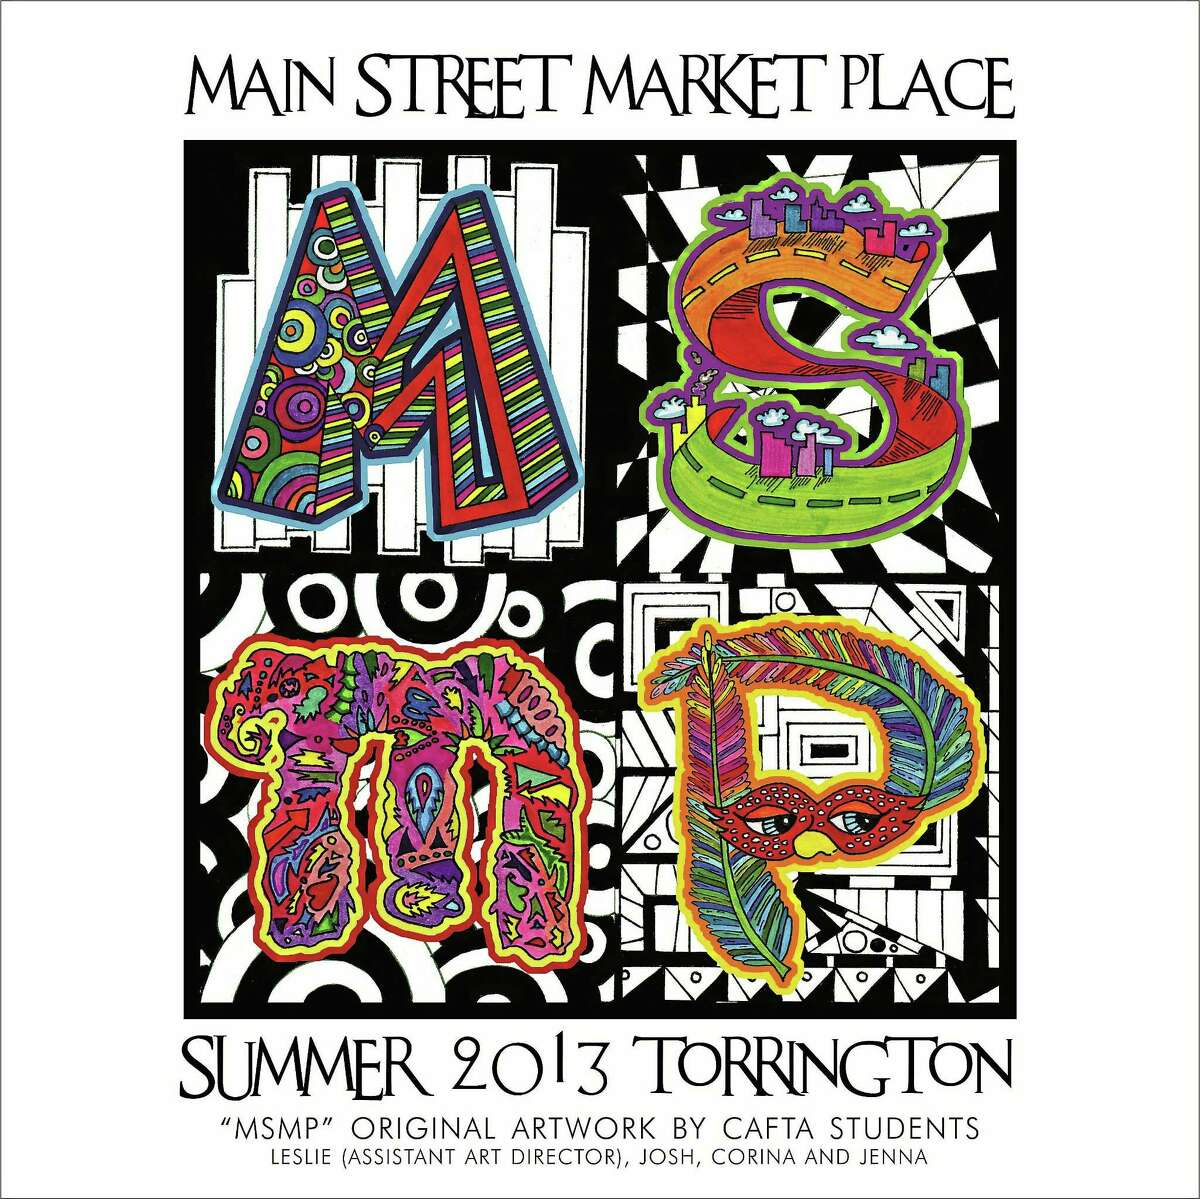 The Torrington Main Street Marketplace banner designed by Connecticut Academy for the Arts (CAFTA) students.